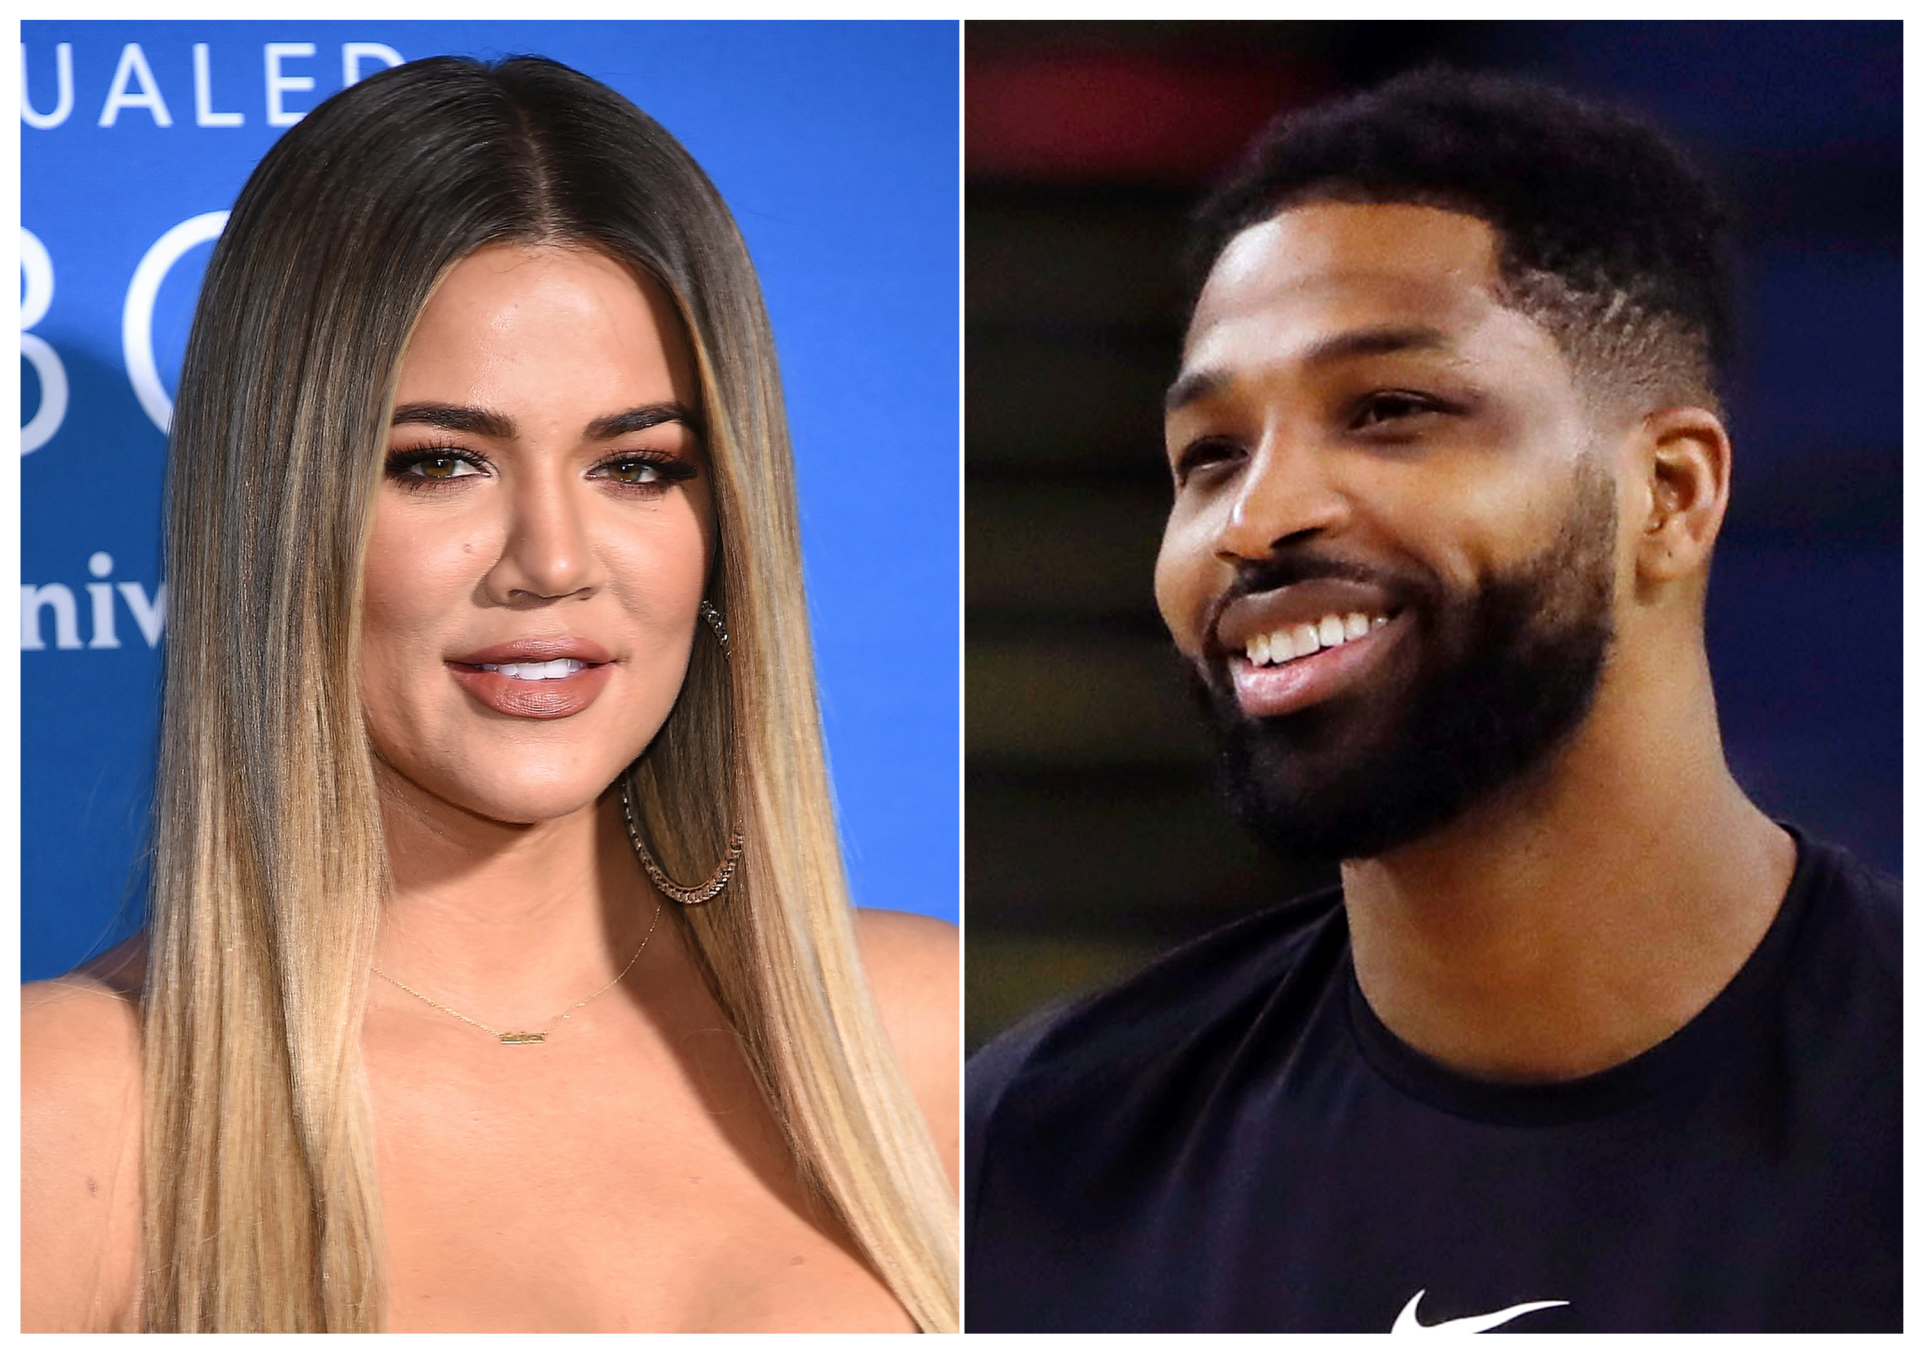 Khloé Kardashian denies Tristan Thompson cheated on pregnant ex with her